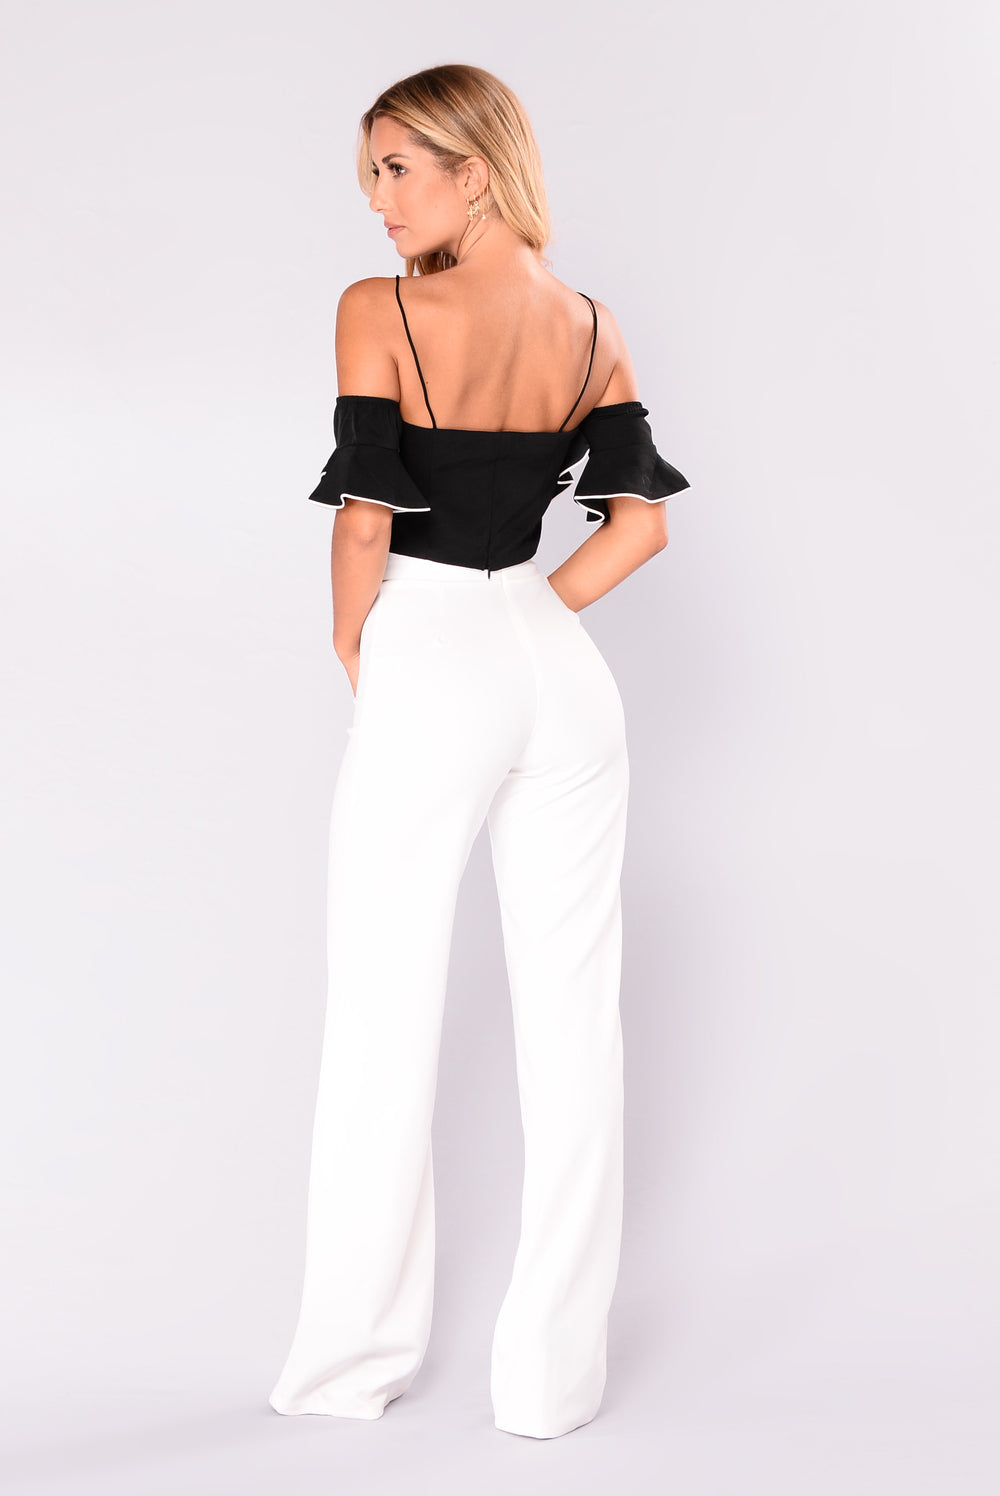 Flare + Wide-Leg Jeans Forever 21 is the authority on fashion & the go-to retailer for the latest trends, must-have styles & the hottest deals. Shop dresses, tops, tees, leggings & more.